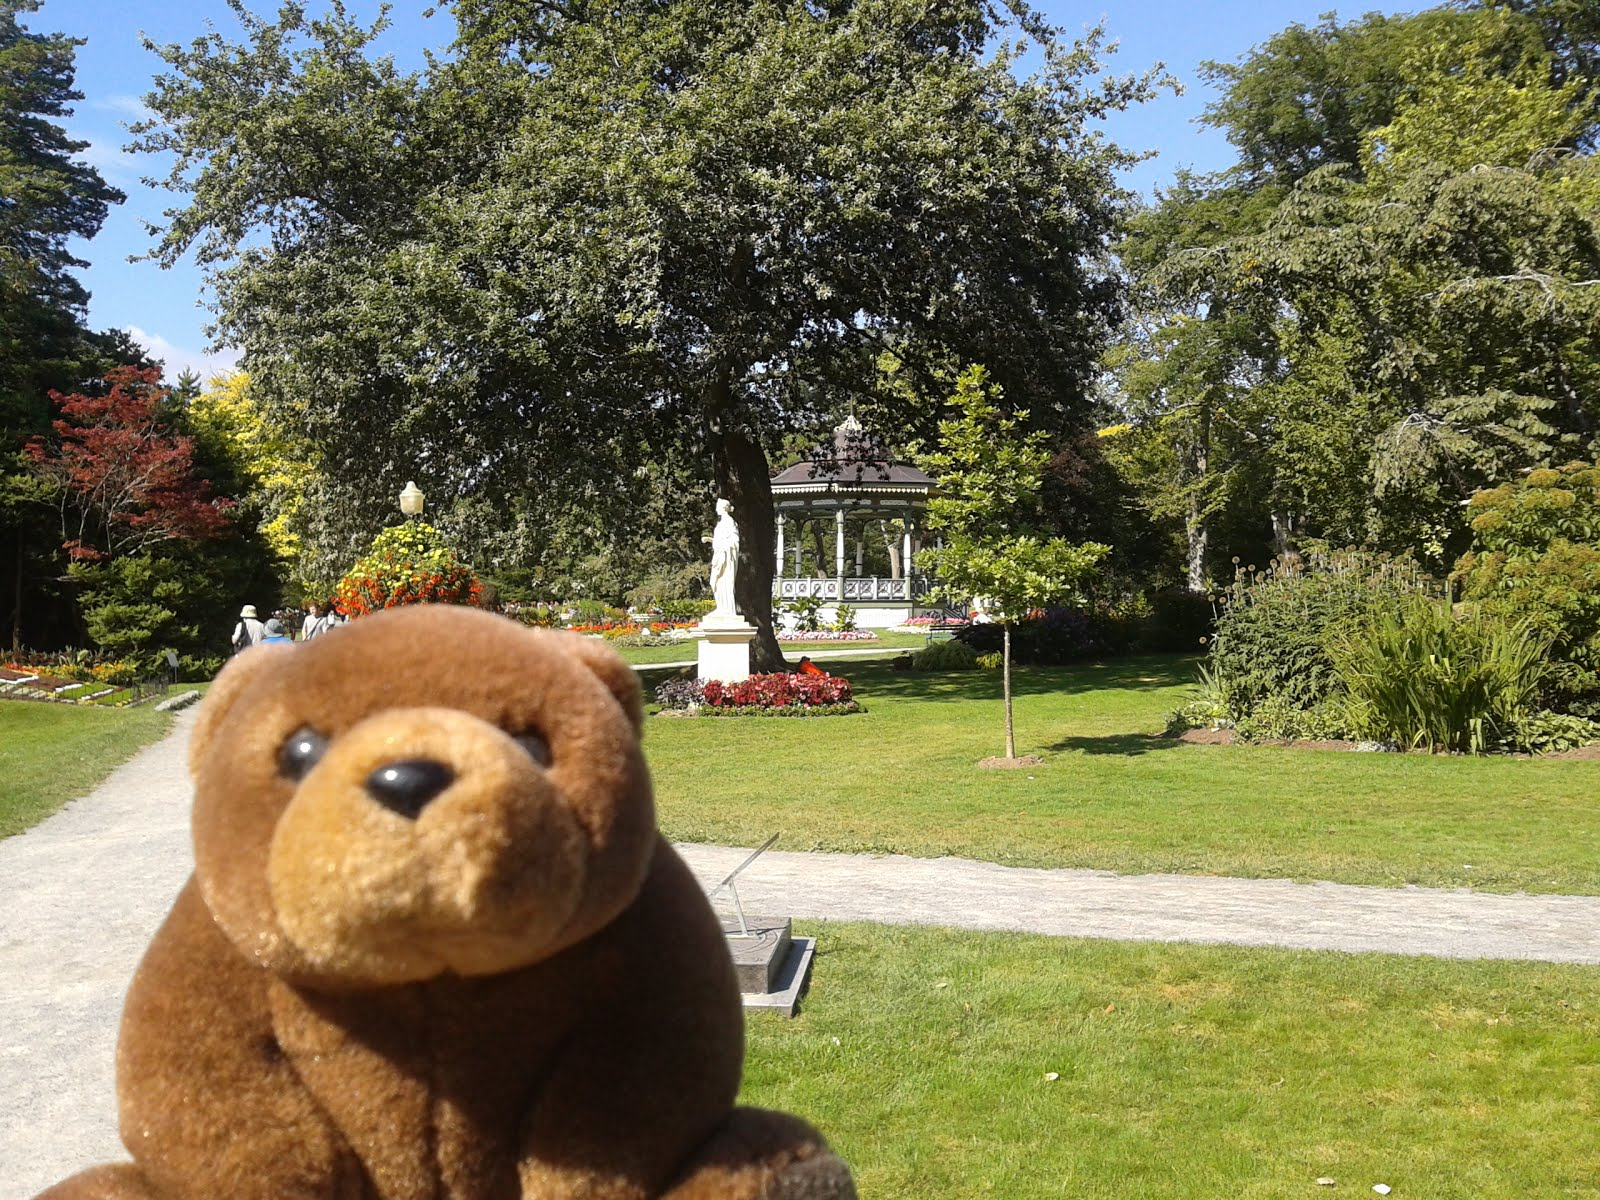 Teddy Garden in Halifax, Canada